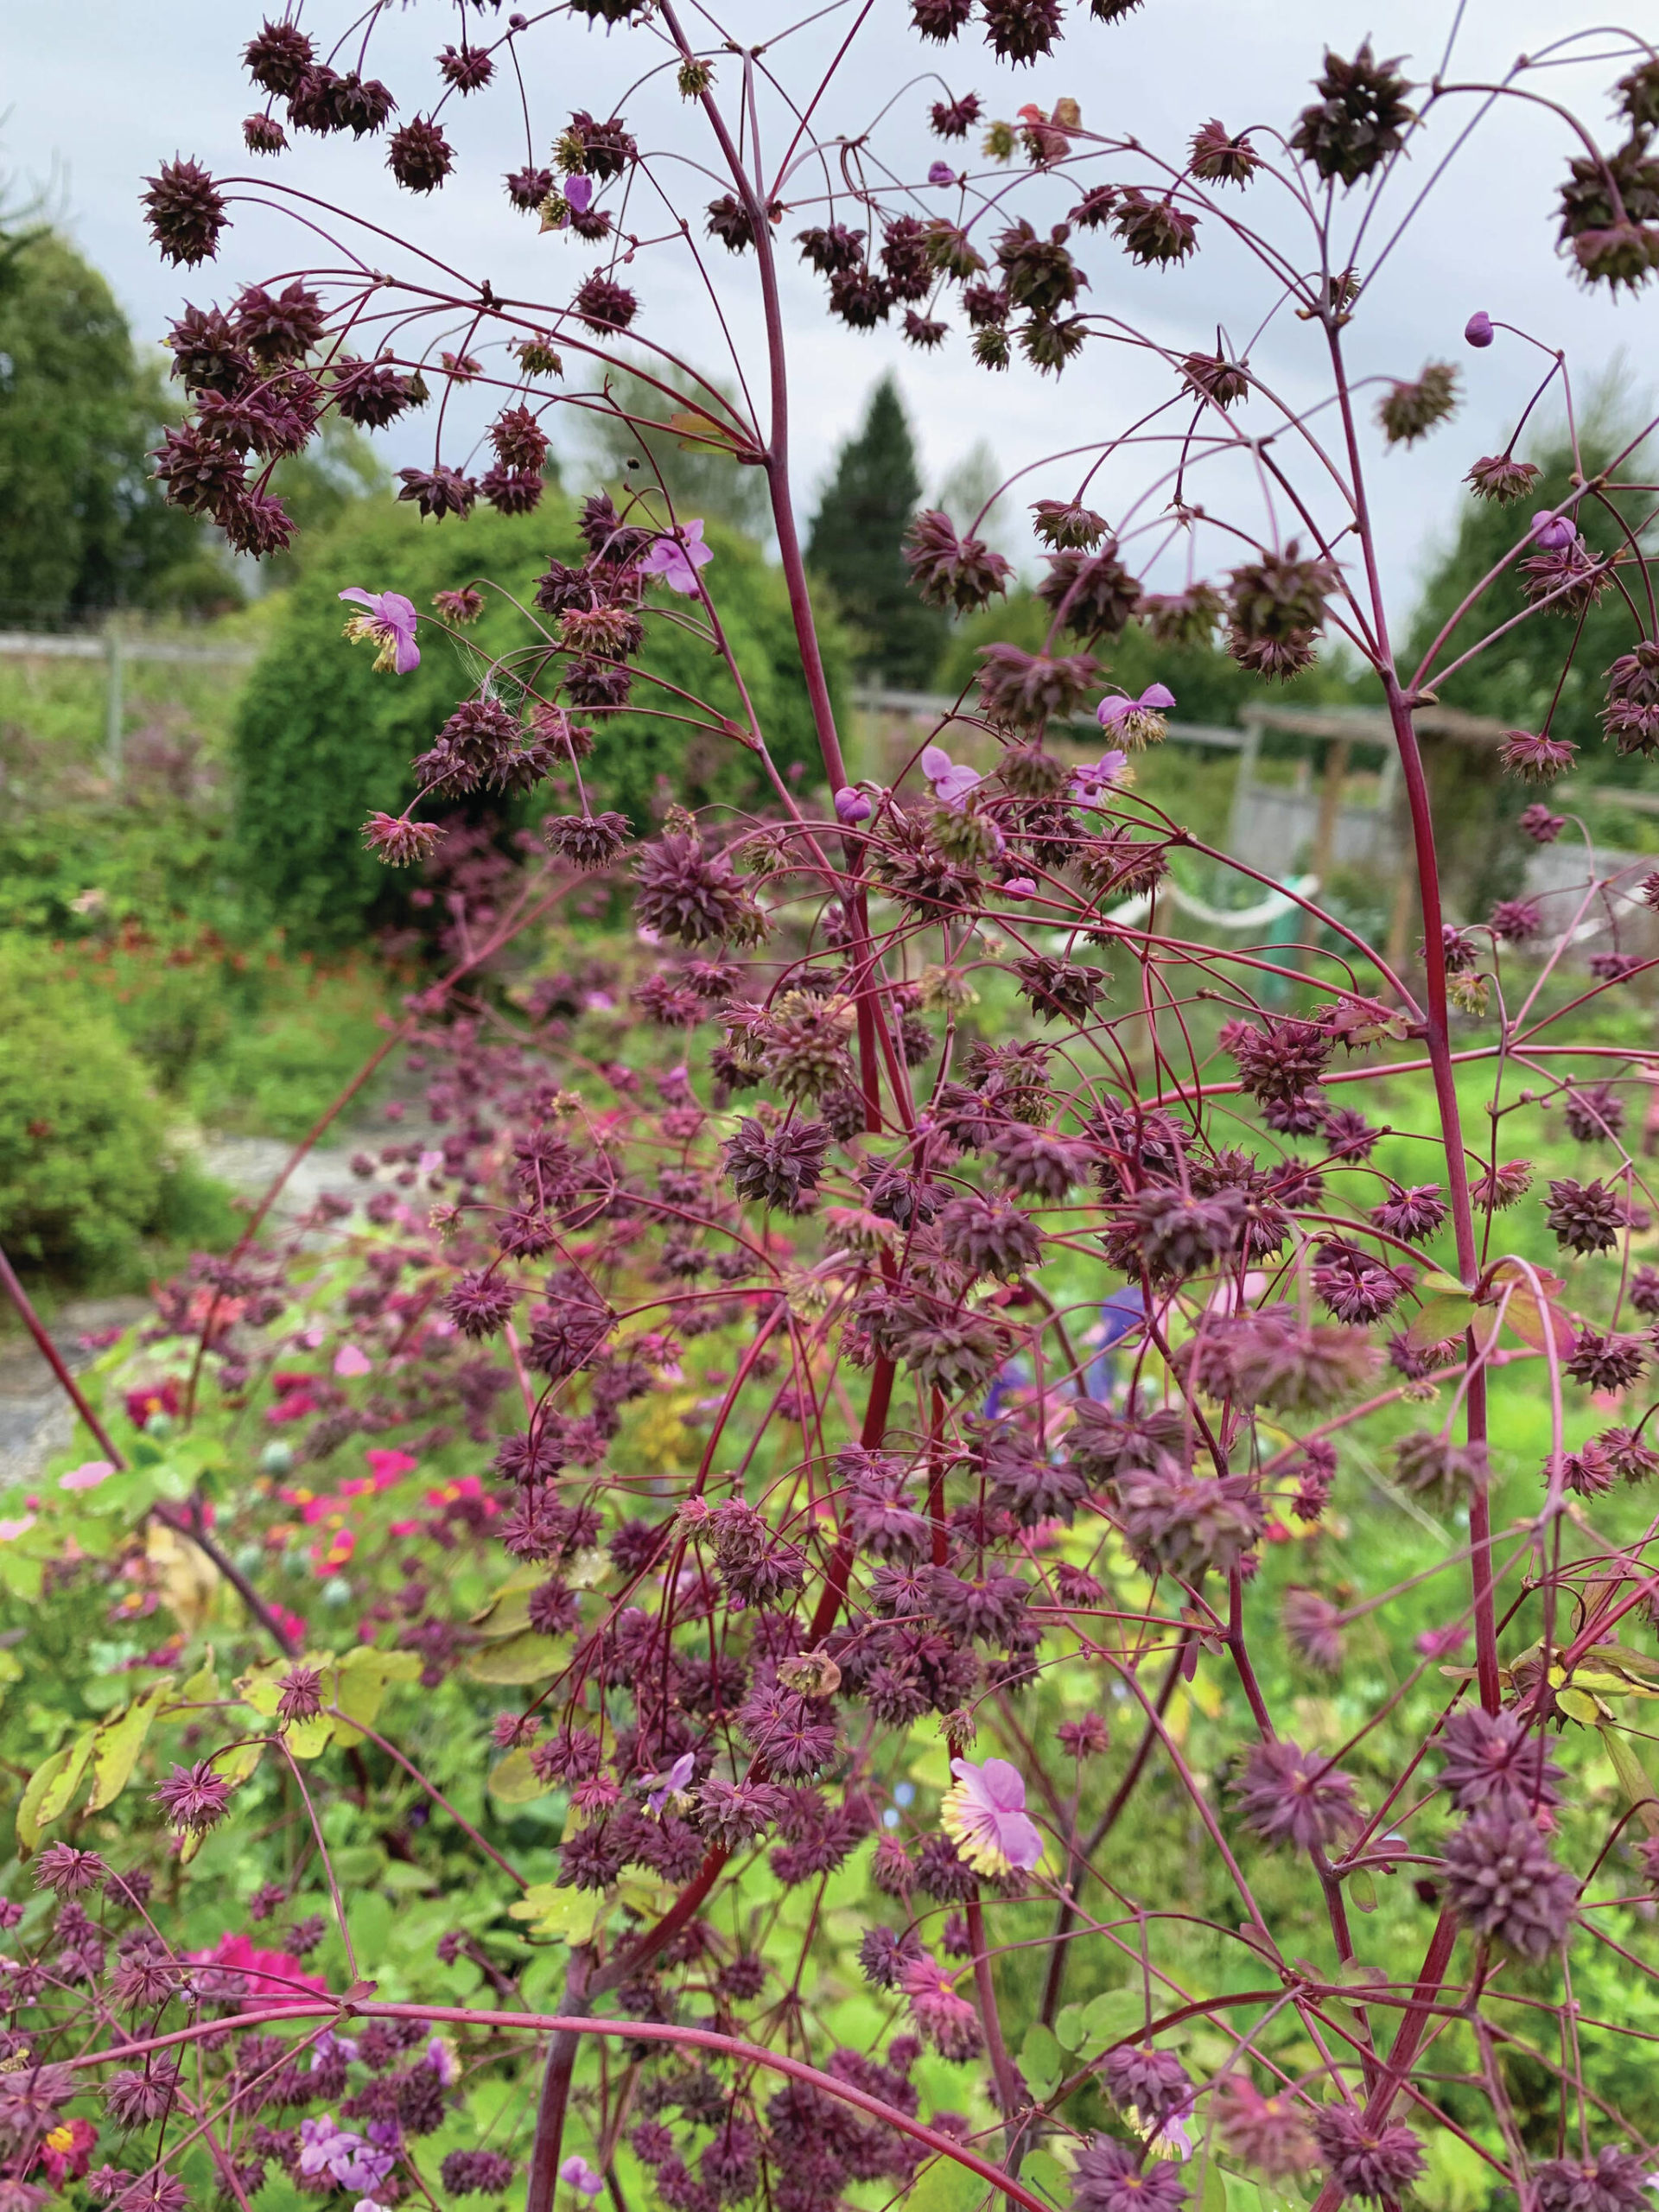 Thalictrum seed heads are just waiting to make way too many seedlings. (Photo by Rosemary Fitzpatrick)